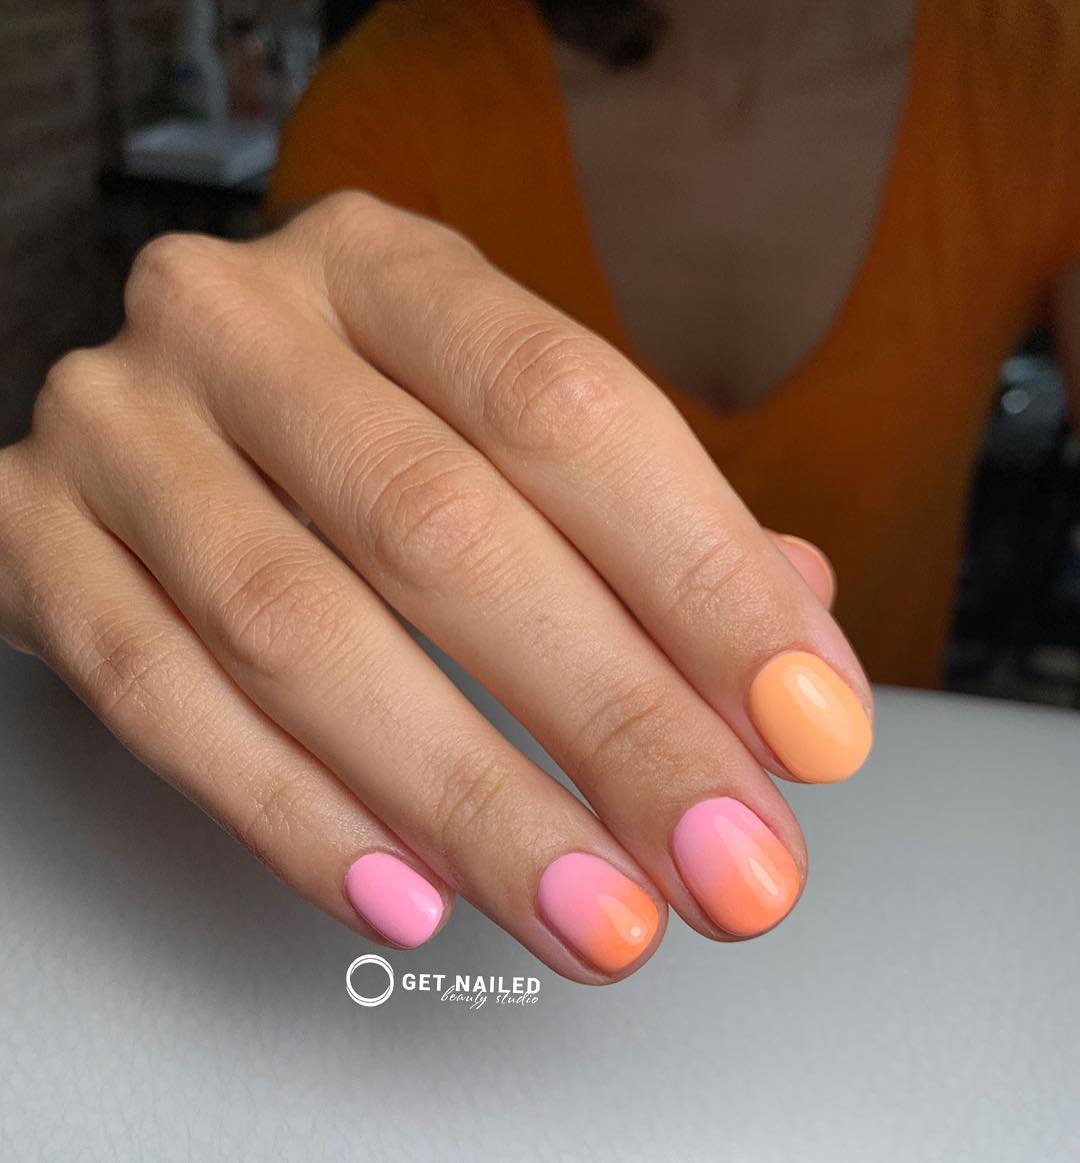 Summer sunset  Nails done by Corina LinuYou can book your appointment on getnailed.co, through DM, WhatsApp +34 680 576 151 or simply by leaving a comment ..luxiogel